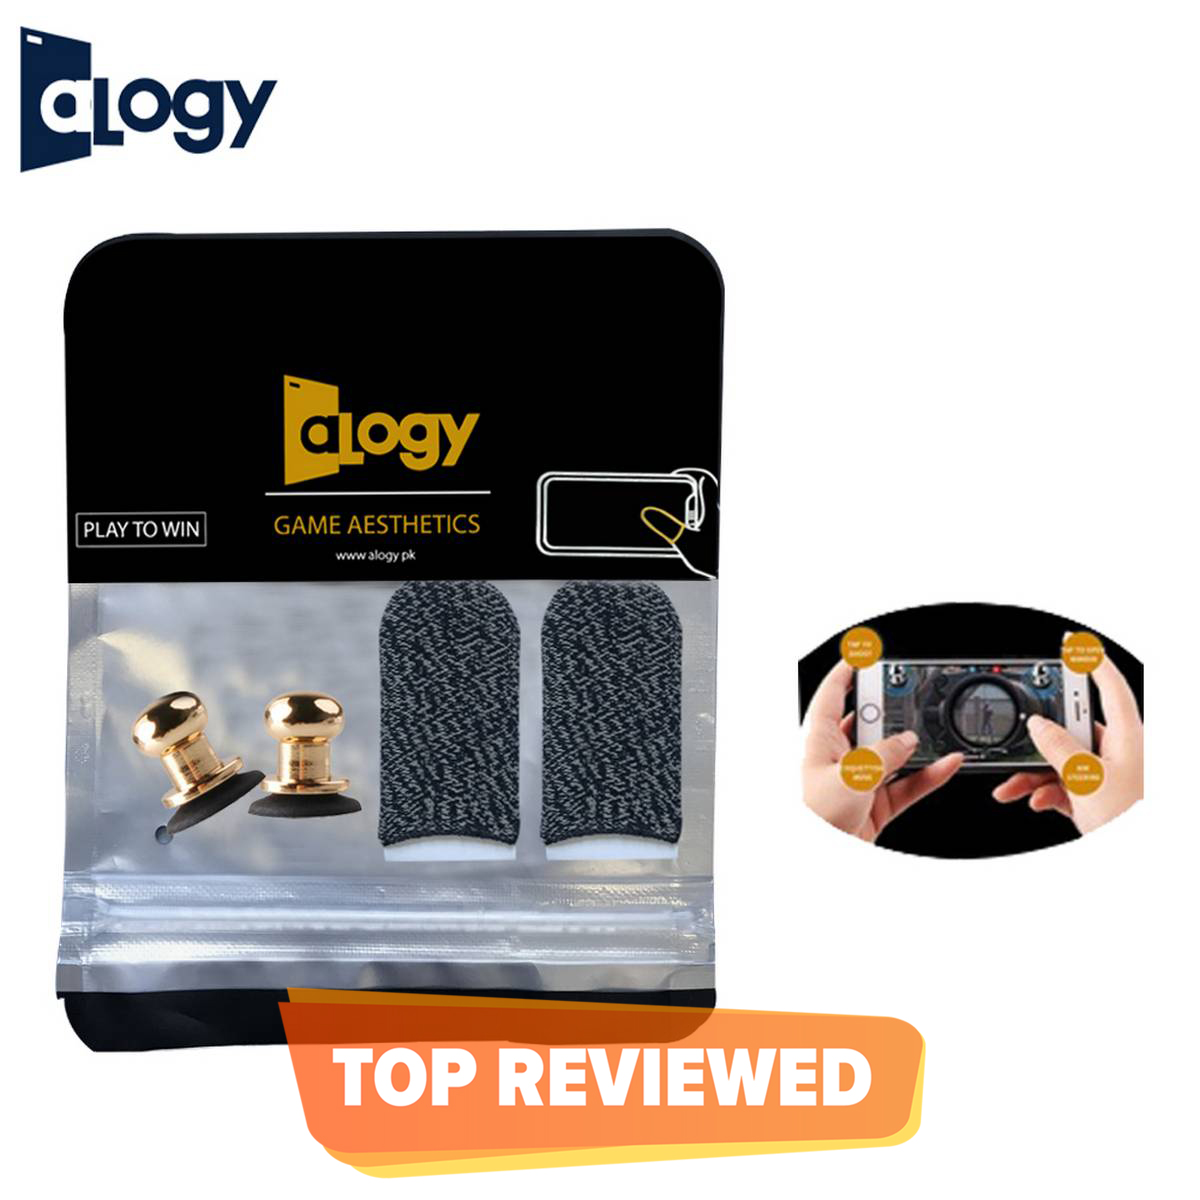 ALOGY - Pack of 2 PUBG Metal Joystick Trigger  with Anti-Sweat Thumb Gloves for Mobile Gaming Controller Fire Buttons L1 R1 for Gamers X13+Gloves